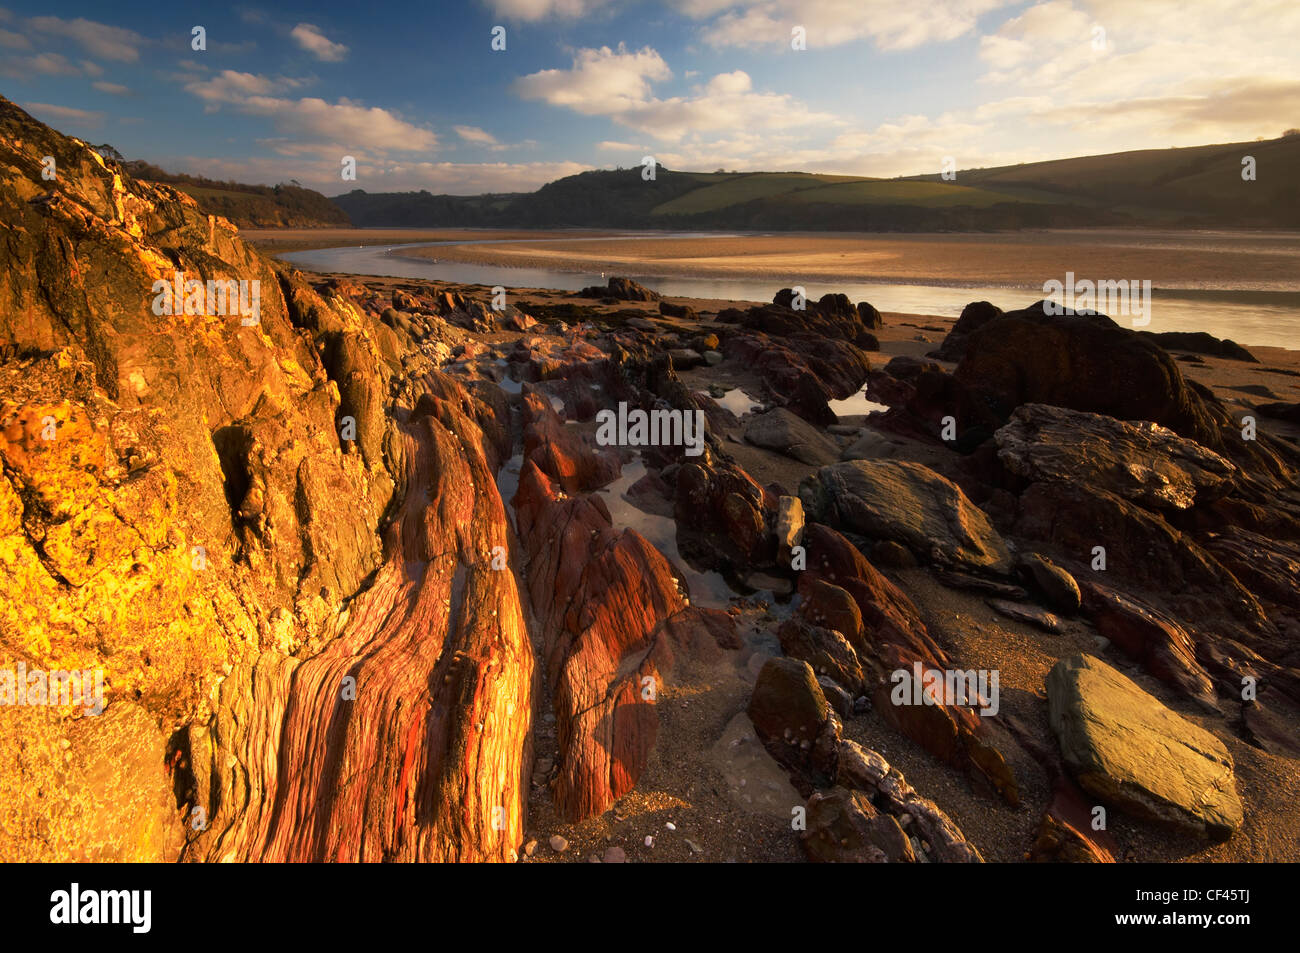 Dawn over Mothecombe beach at the estuary of the River Erme. - Stock Image